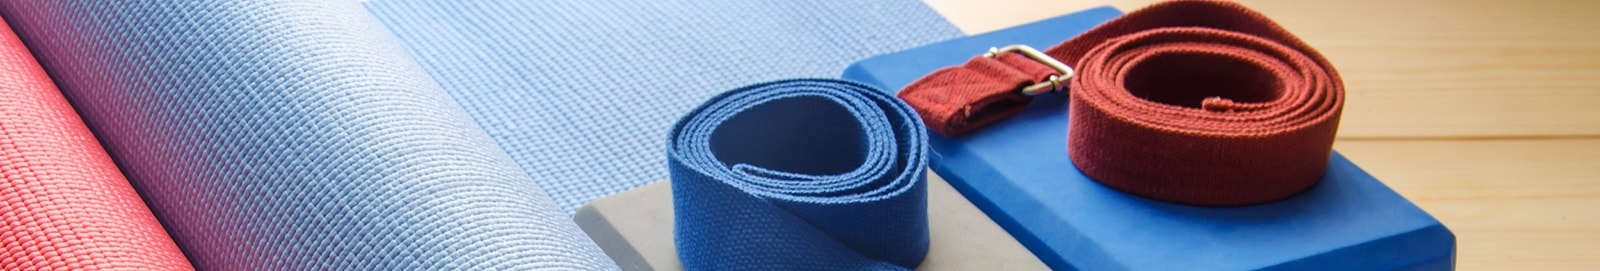 Yoga bricks, bolsters, belts and props at discount prices on Yoga Direct UK